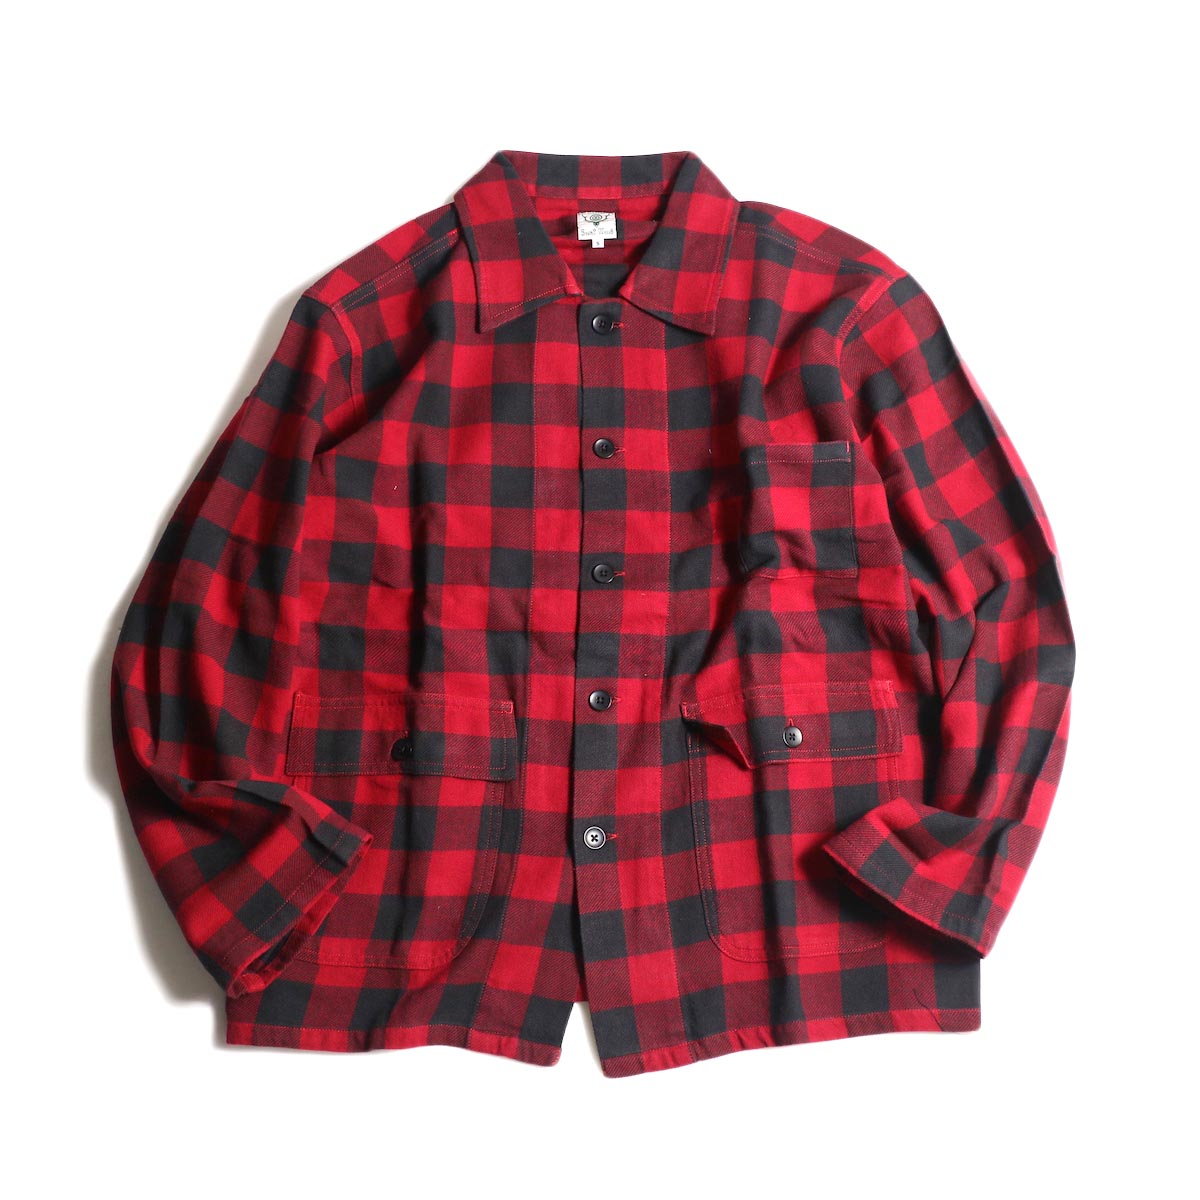 South2 West8 / Hunting Shirt -Plaid Twill (Red/Black)